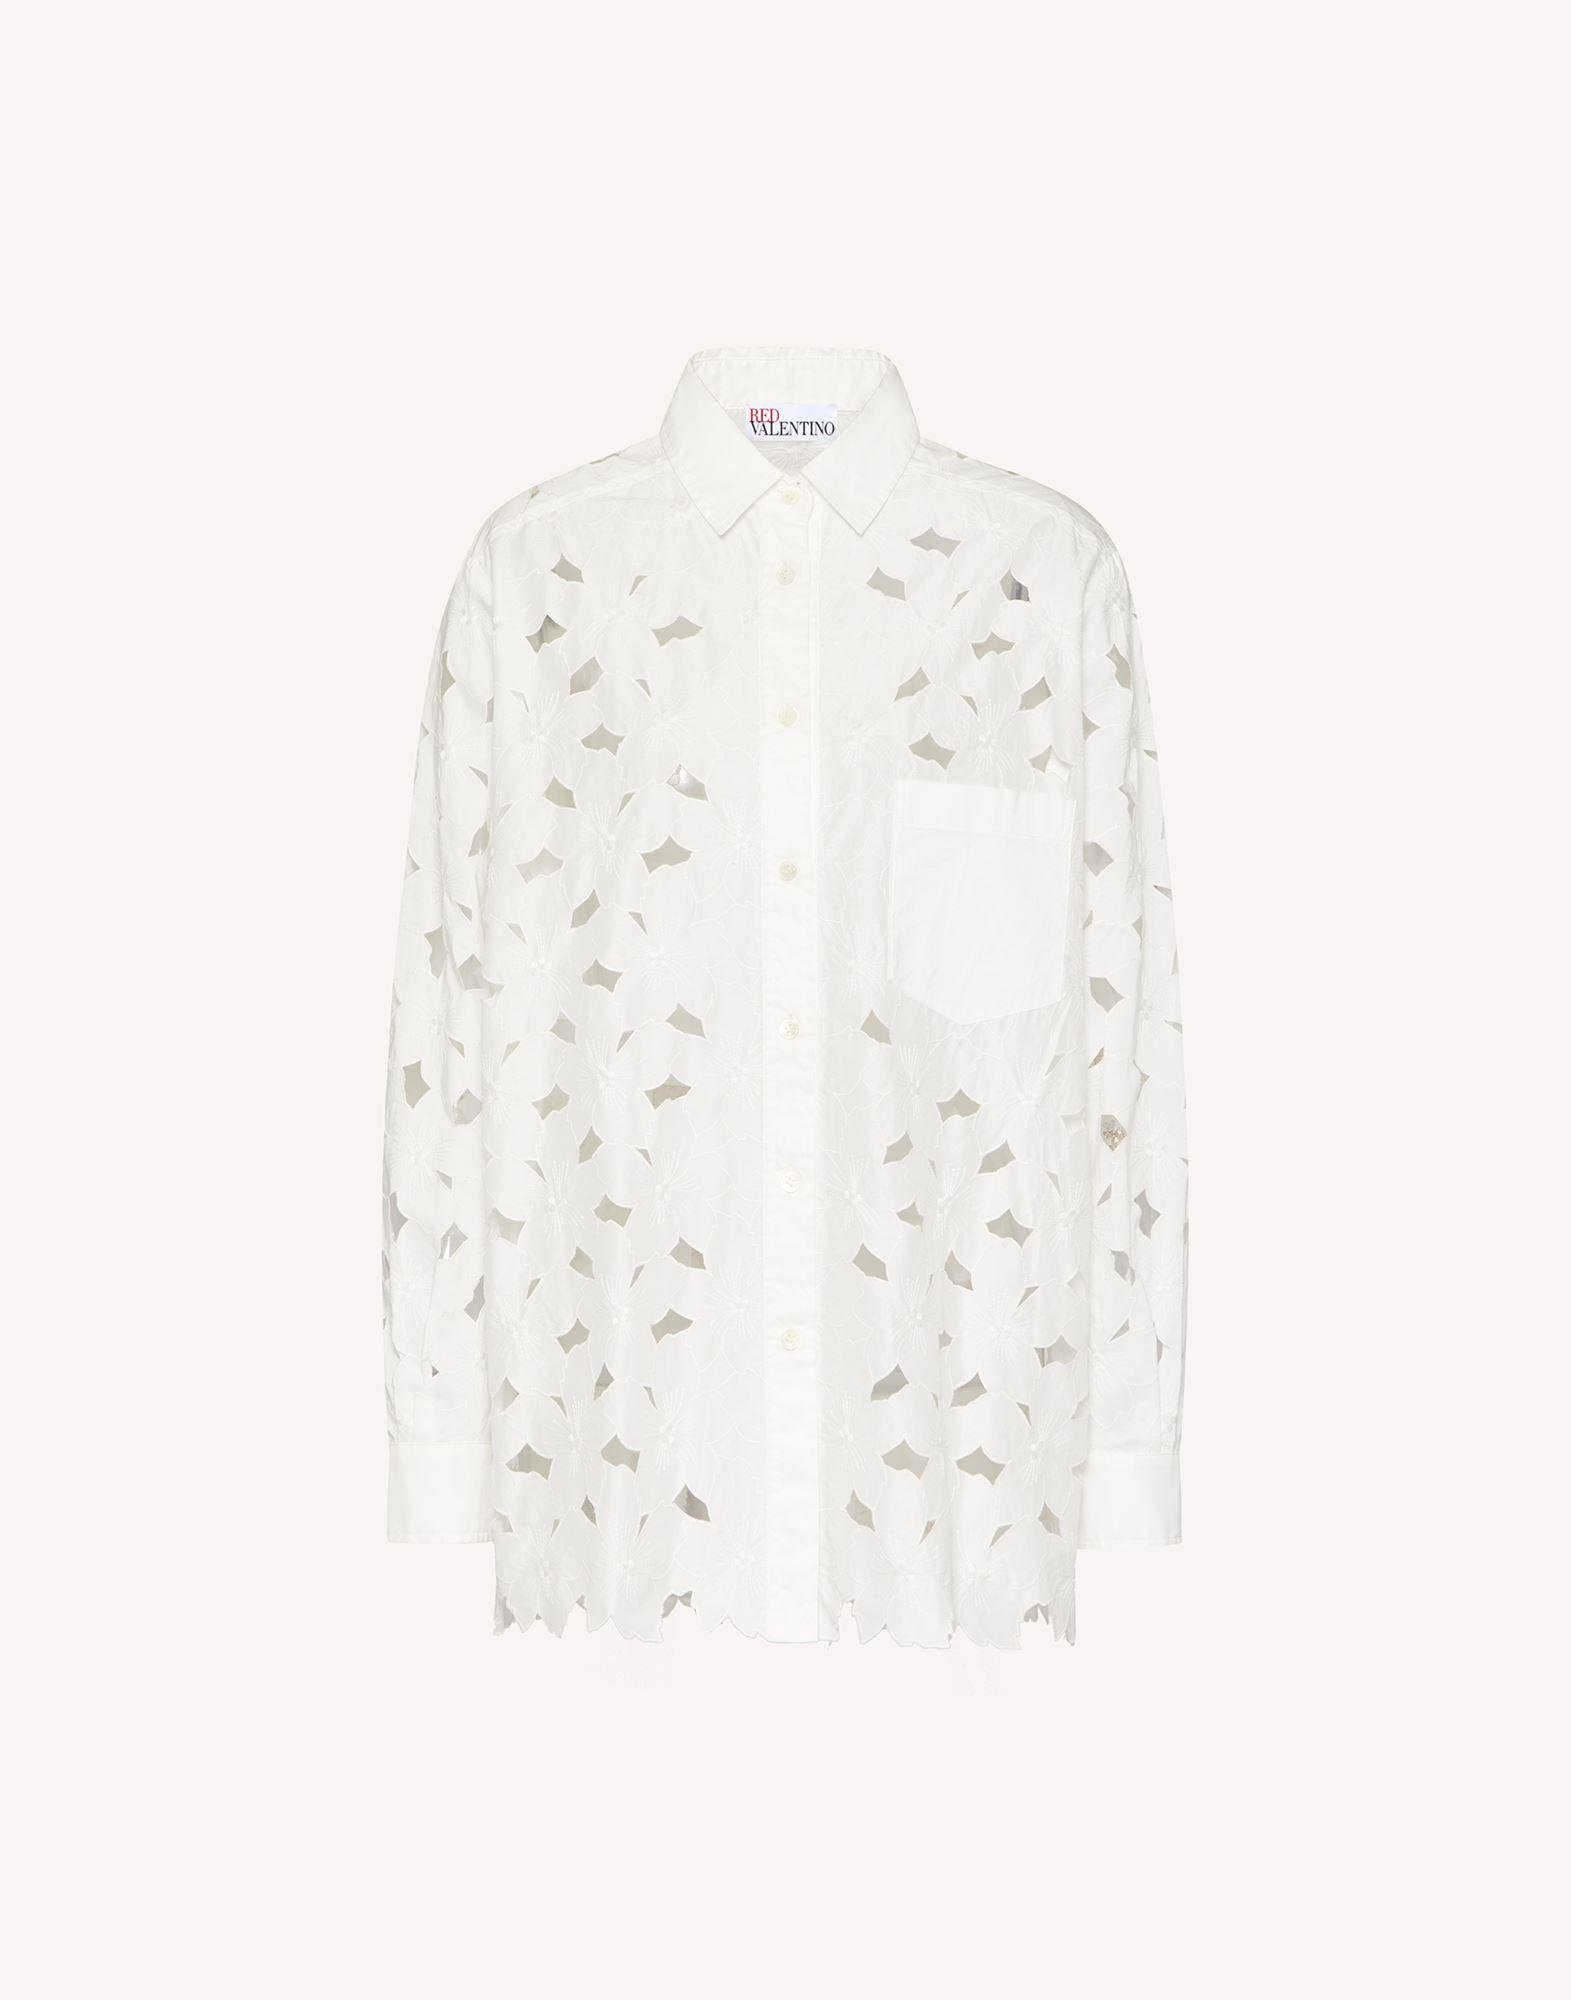 COTTON POPLIN SHIRT WITH CUT-OUT EMBROIDERY 4